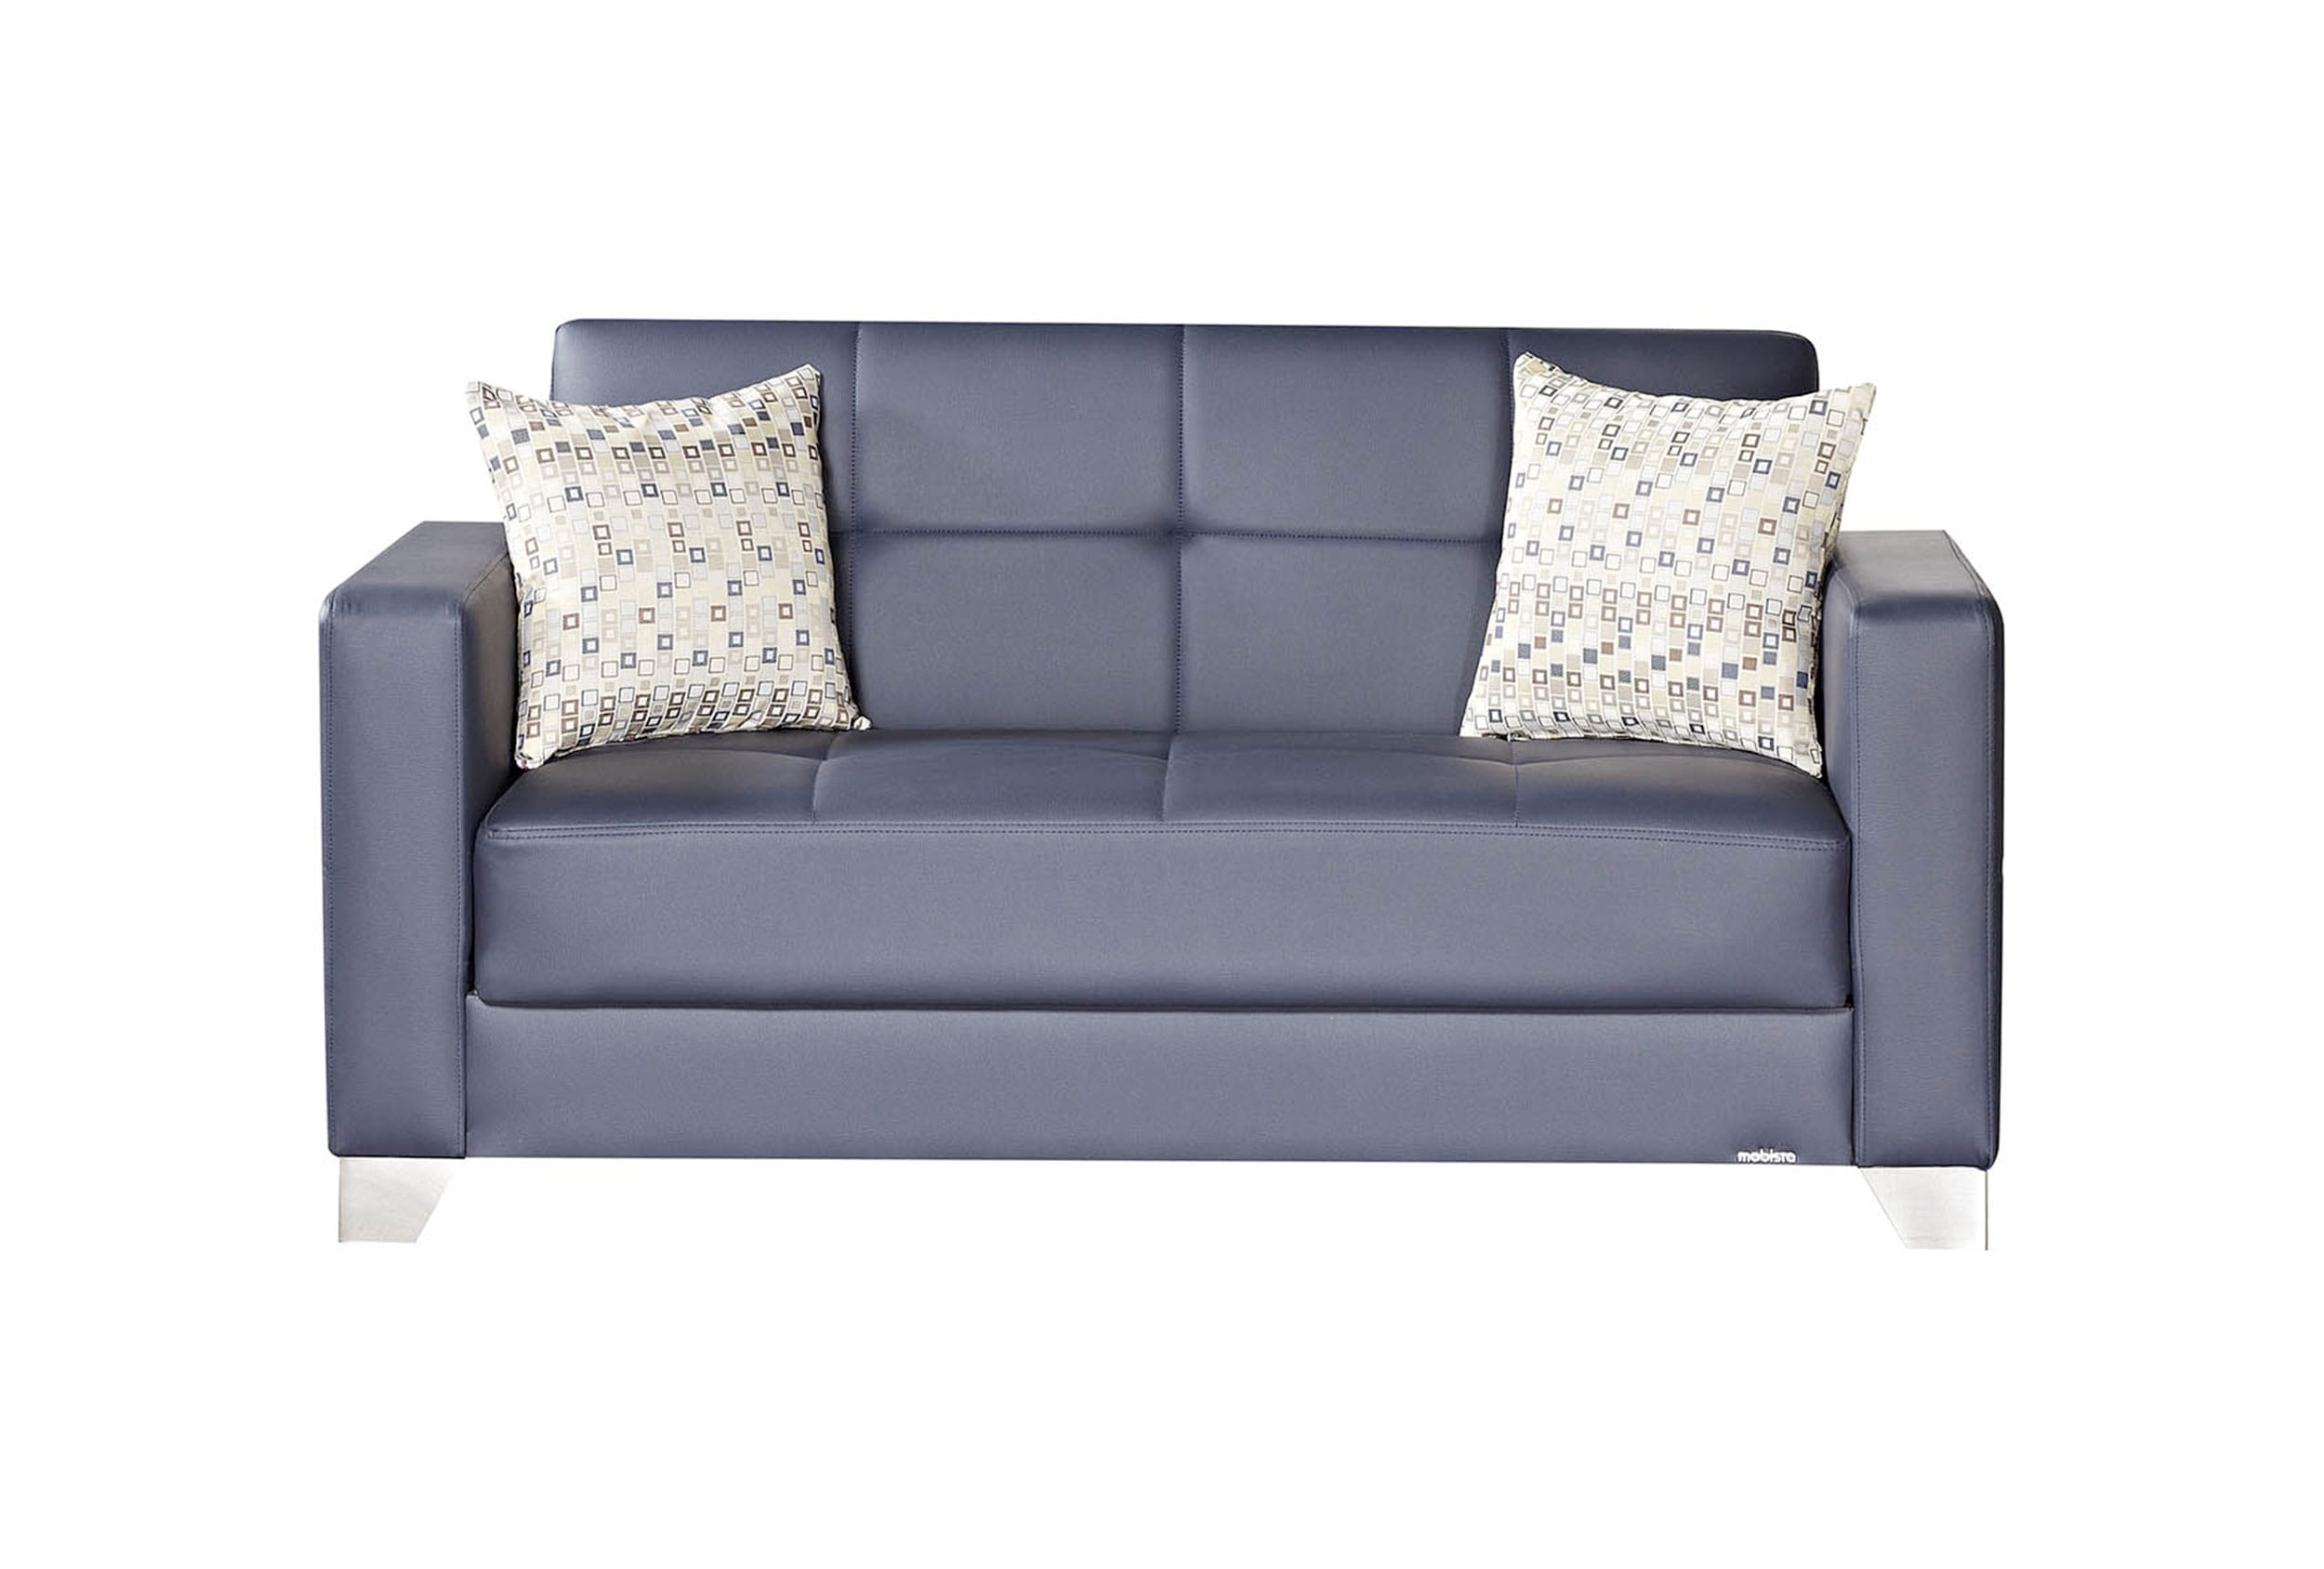 Viva Italia Prestige Navy Blue Leatherette Loveseat Bed By Mobista